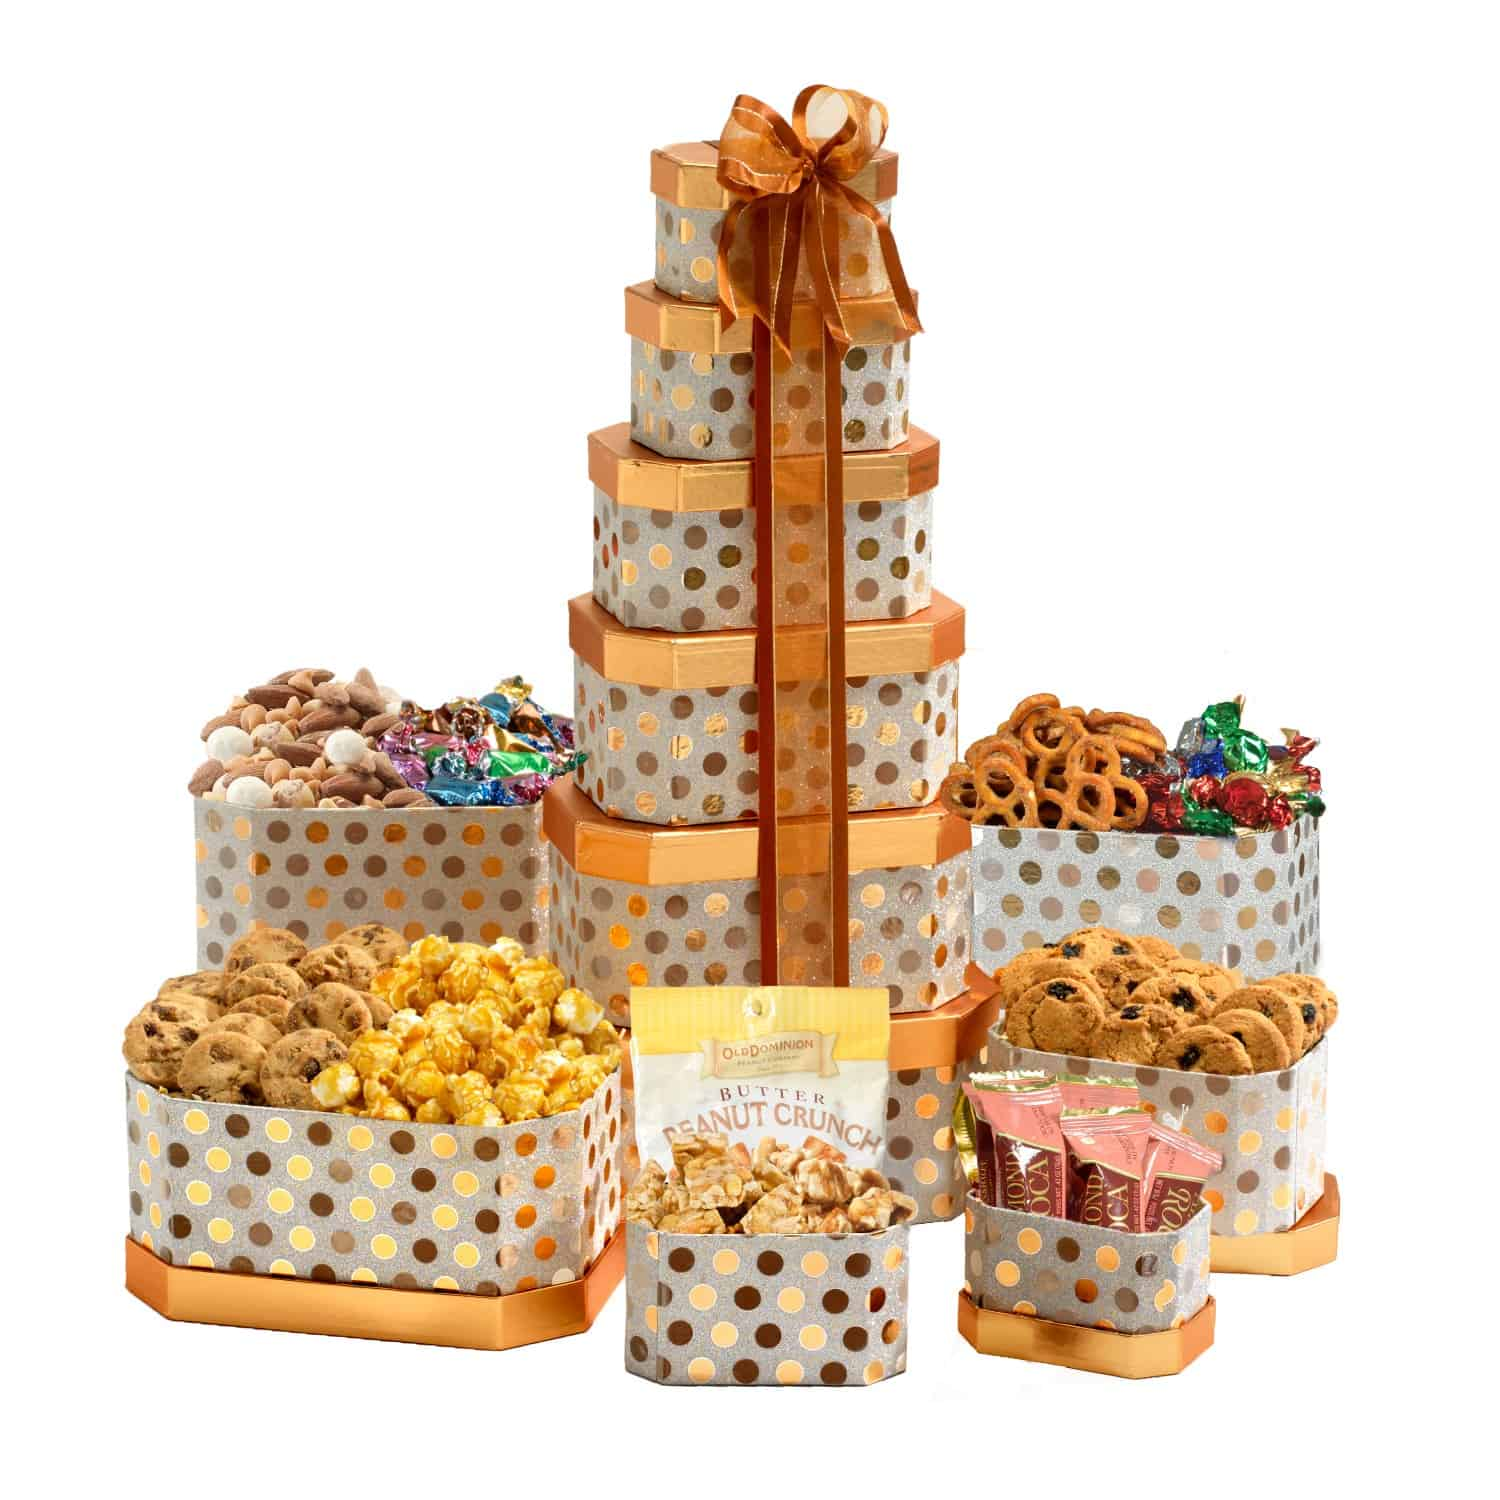 Elegance Birthday Gift Tower By BroadwayBasketeers